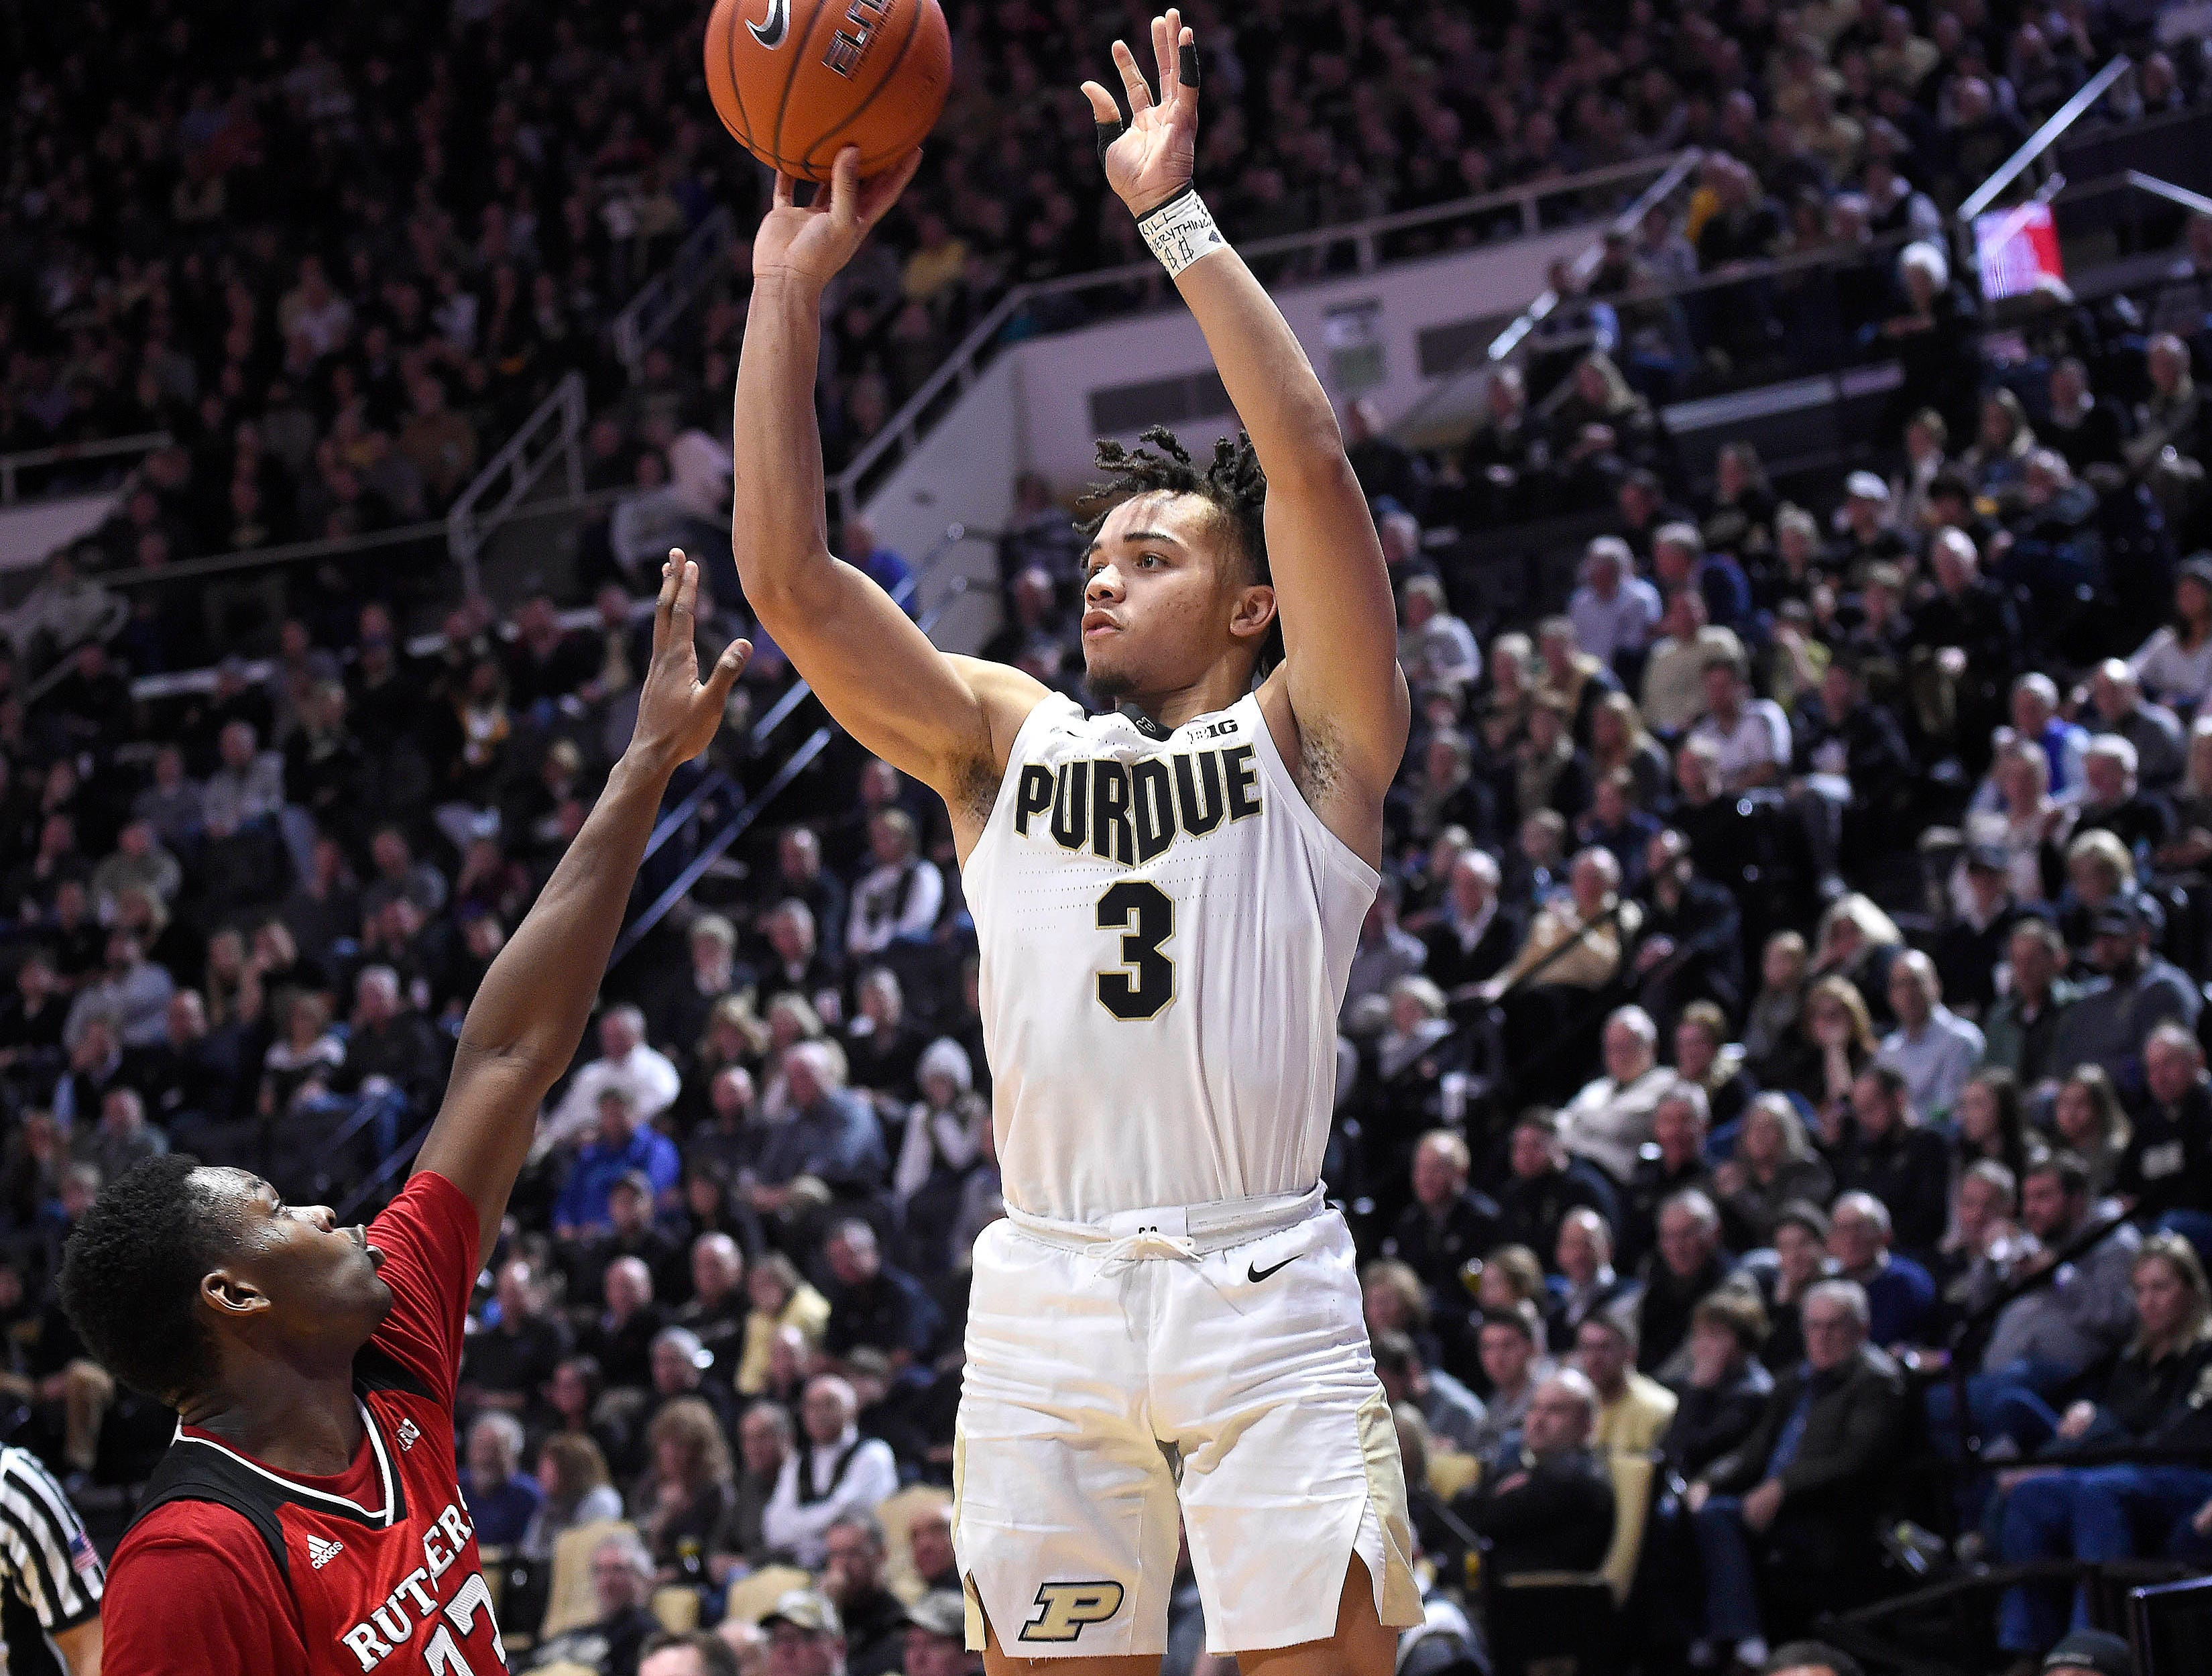 Jan 15, 2019; West Lafayette, IN, USA; Purdue Boilermakers guard Carsen Edwards (3) releases a shot over the defense of Rutgers Scarlet Knights guard Montez Mathis (23) in the 2nd half at Mackey Arena. Mandatory Credit: Sandra Dukes-USA TODAY Sports